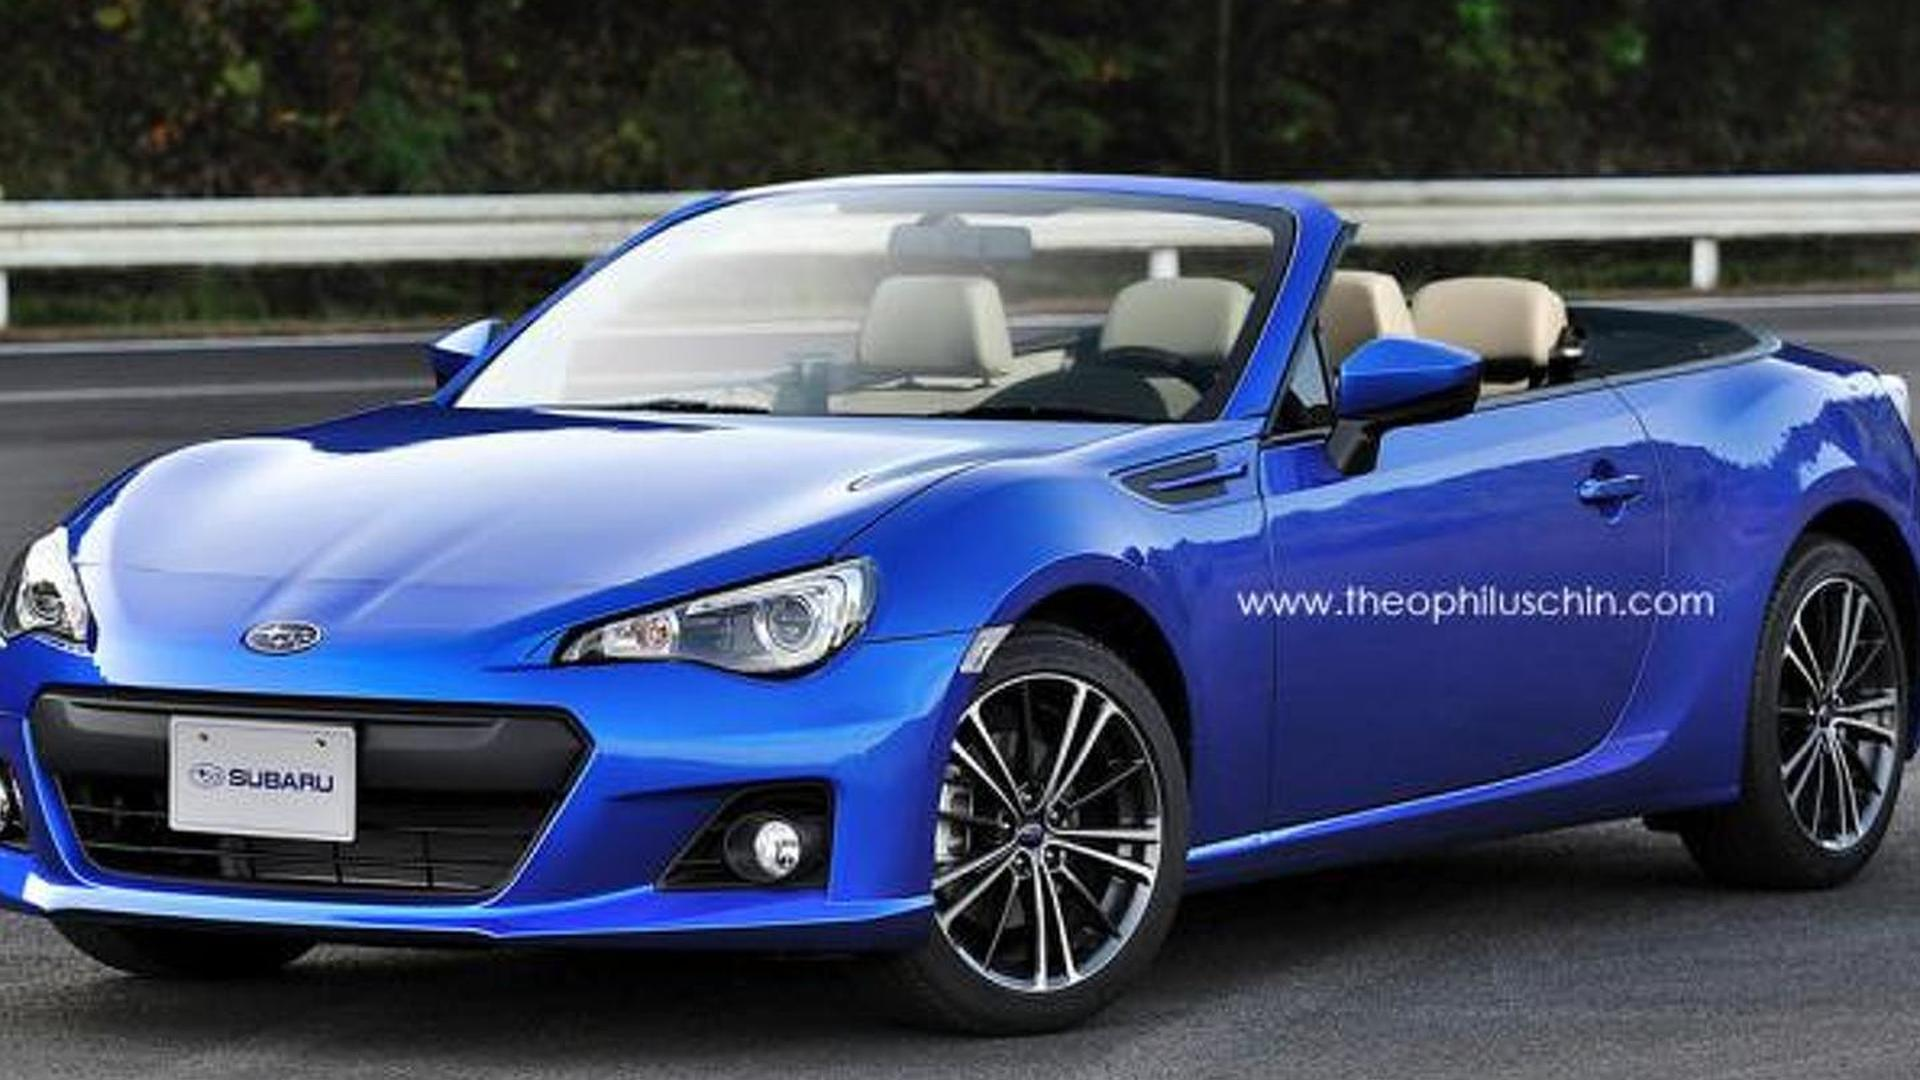 subaru confirms awd twin turbo convertible two seater diesel hybrid brz. Black Bedroom Furniture Sets. Home Design Ideas